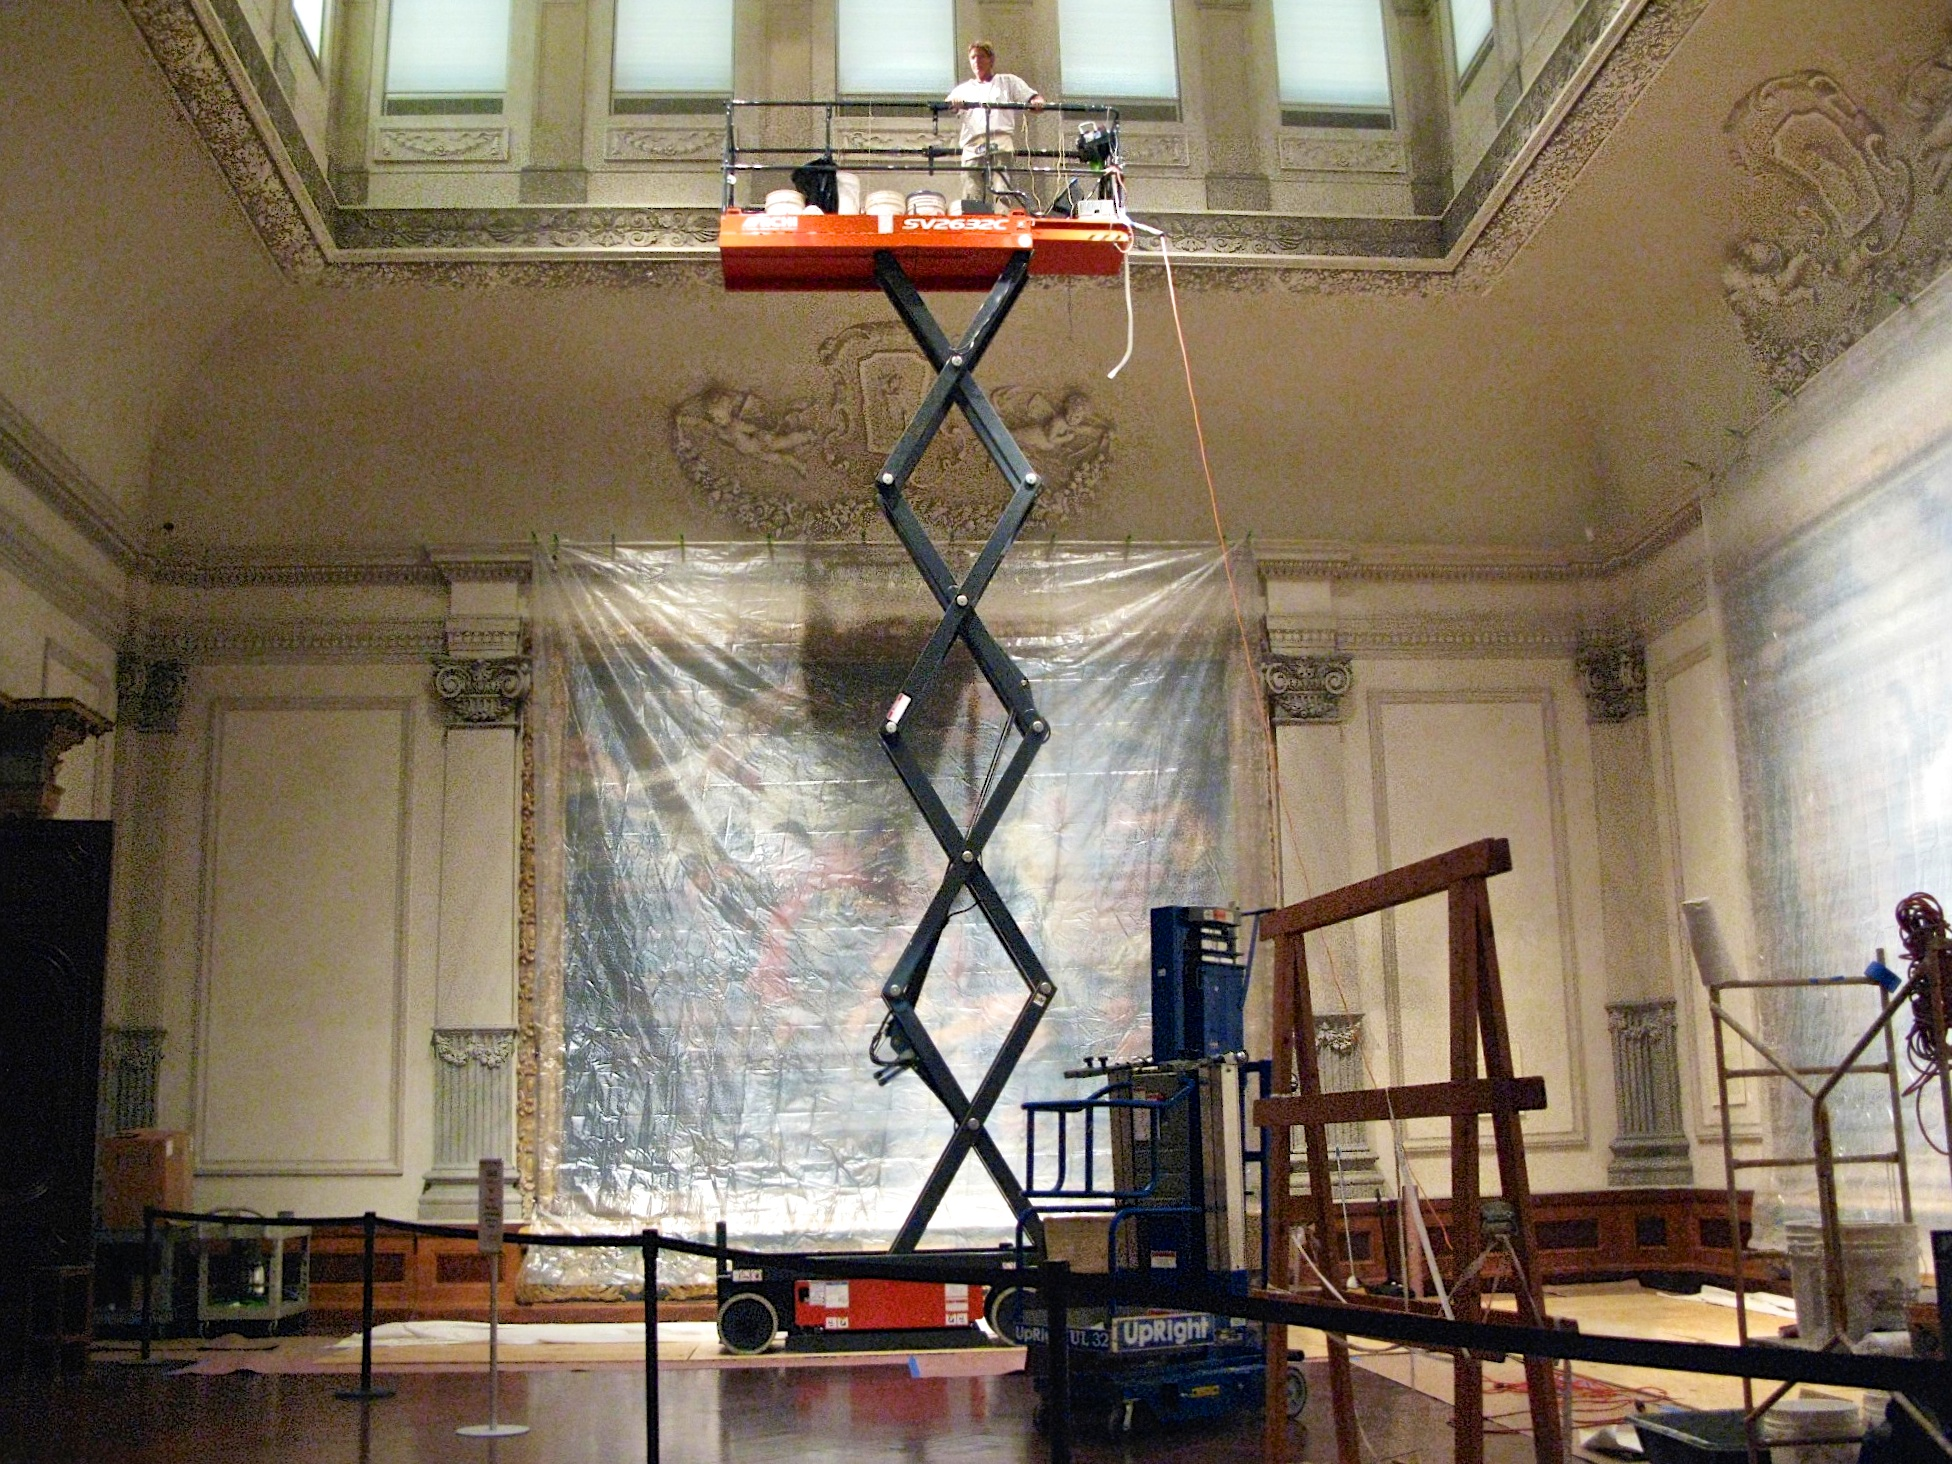 Jonathan Pettus restoring the decorative plaster surface structures of the Rubens Gallery at the Ringling Museum of Art.